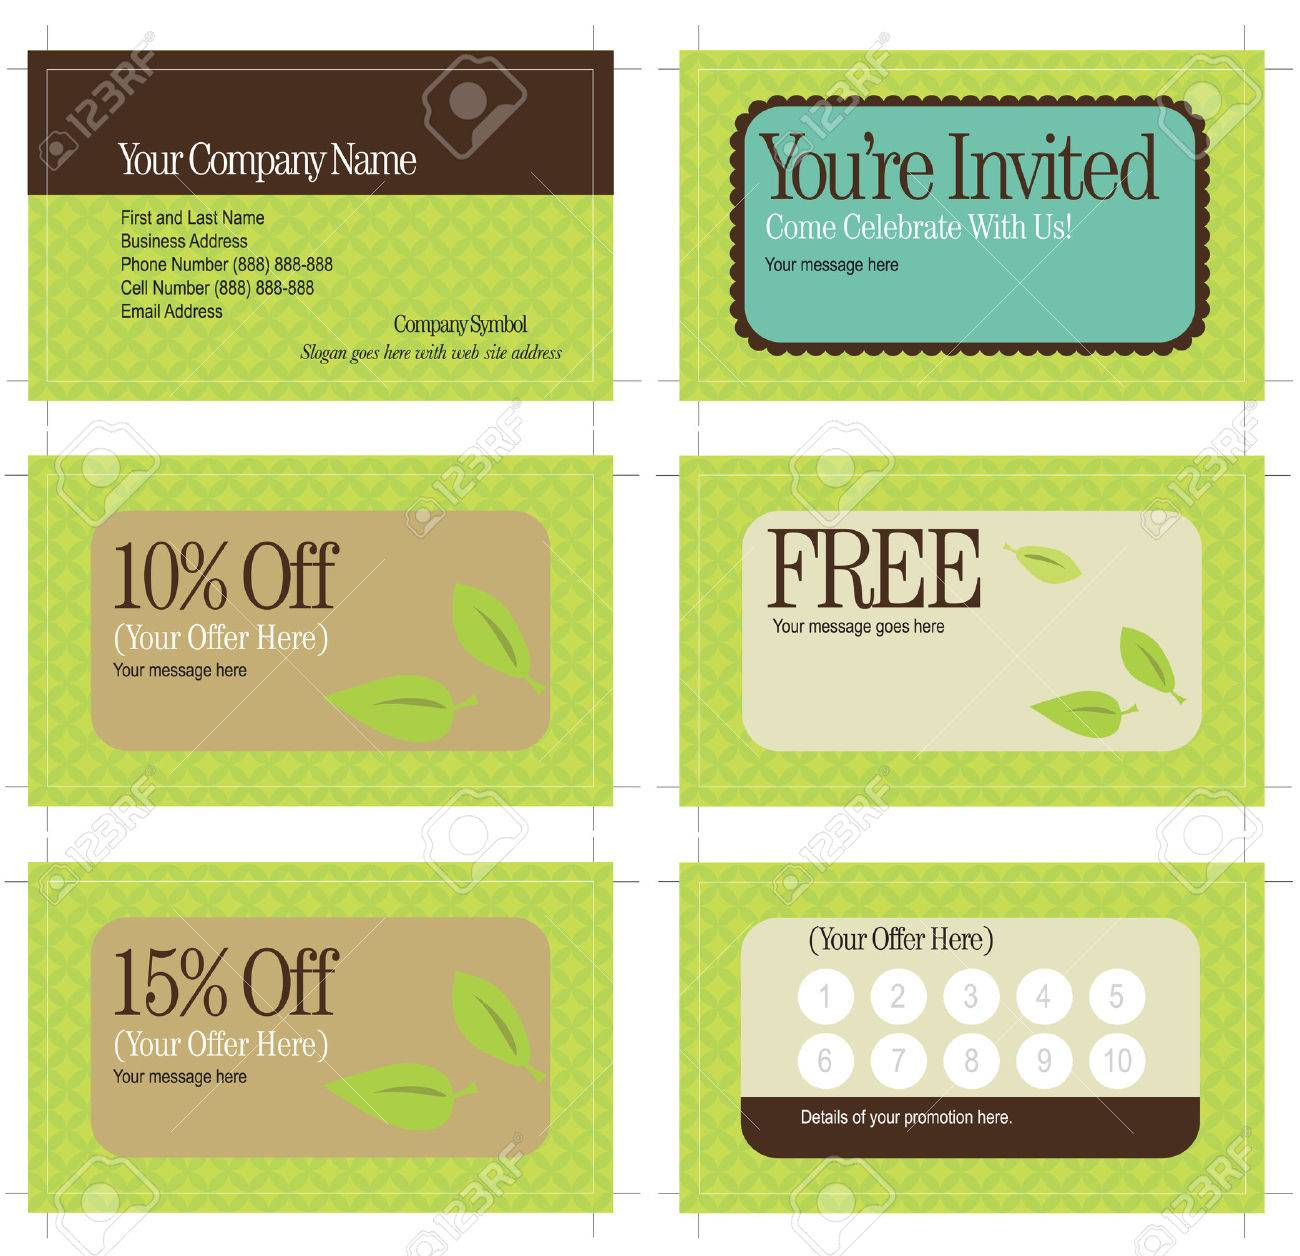 3.5x2 Business Card And Promo Cards (includes Crop Marks, Key ...